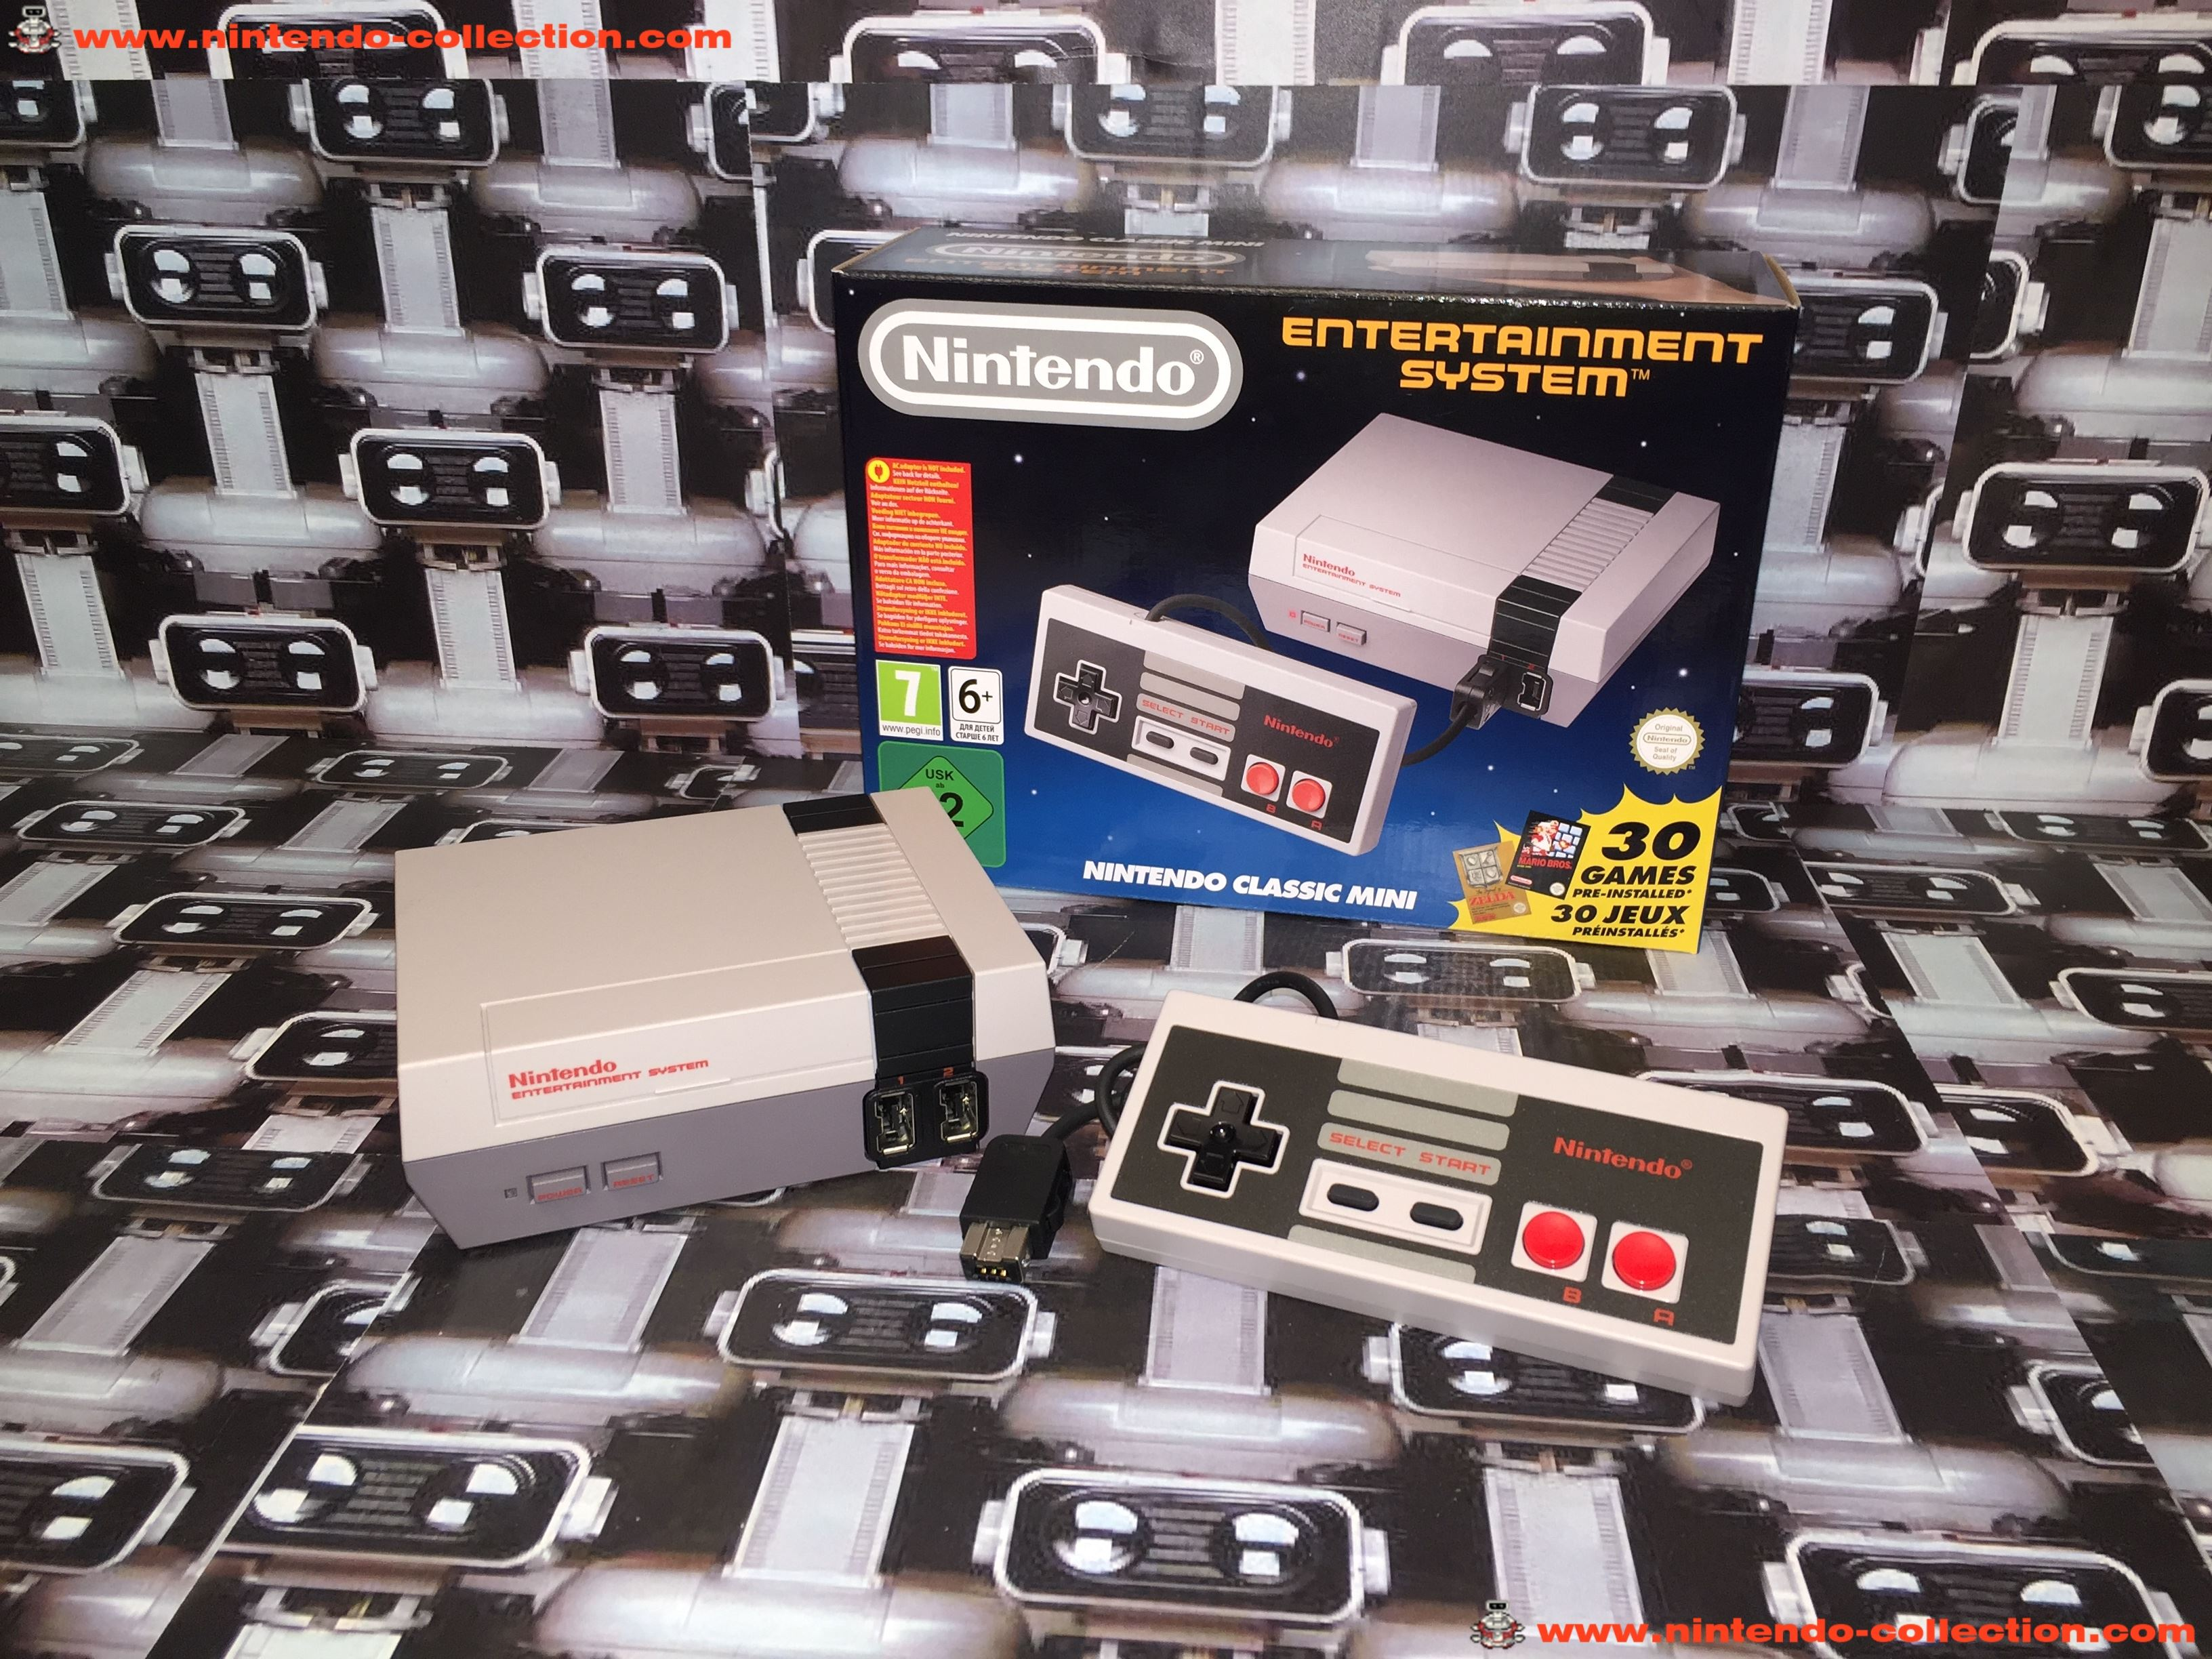 www.nintendo-collection.com - Nintendo Classic Mini Nes Nintendo Entertainment system European Europ